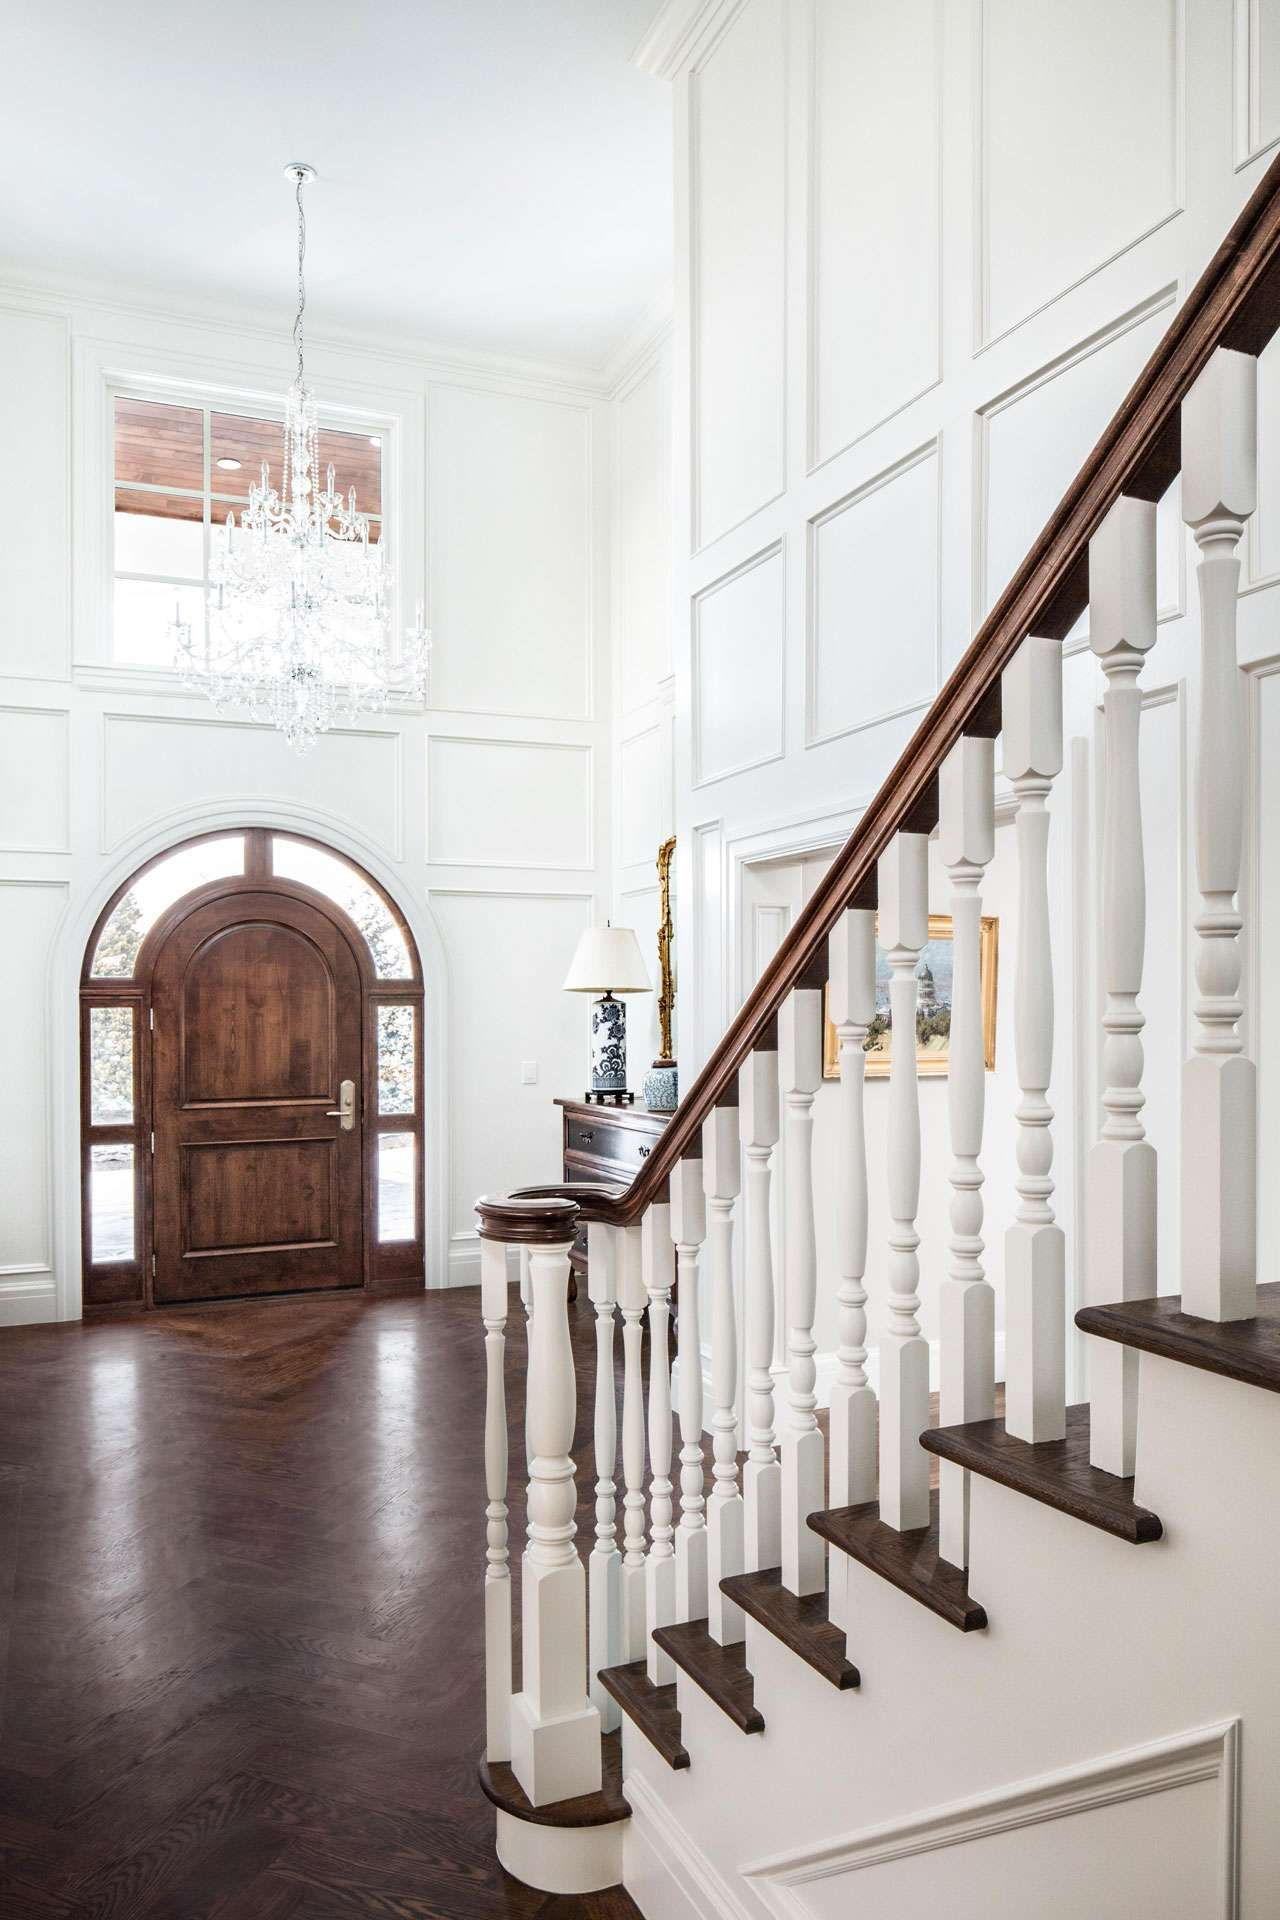 Stunning tall white entryway with an arched wood front door